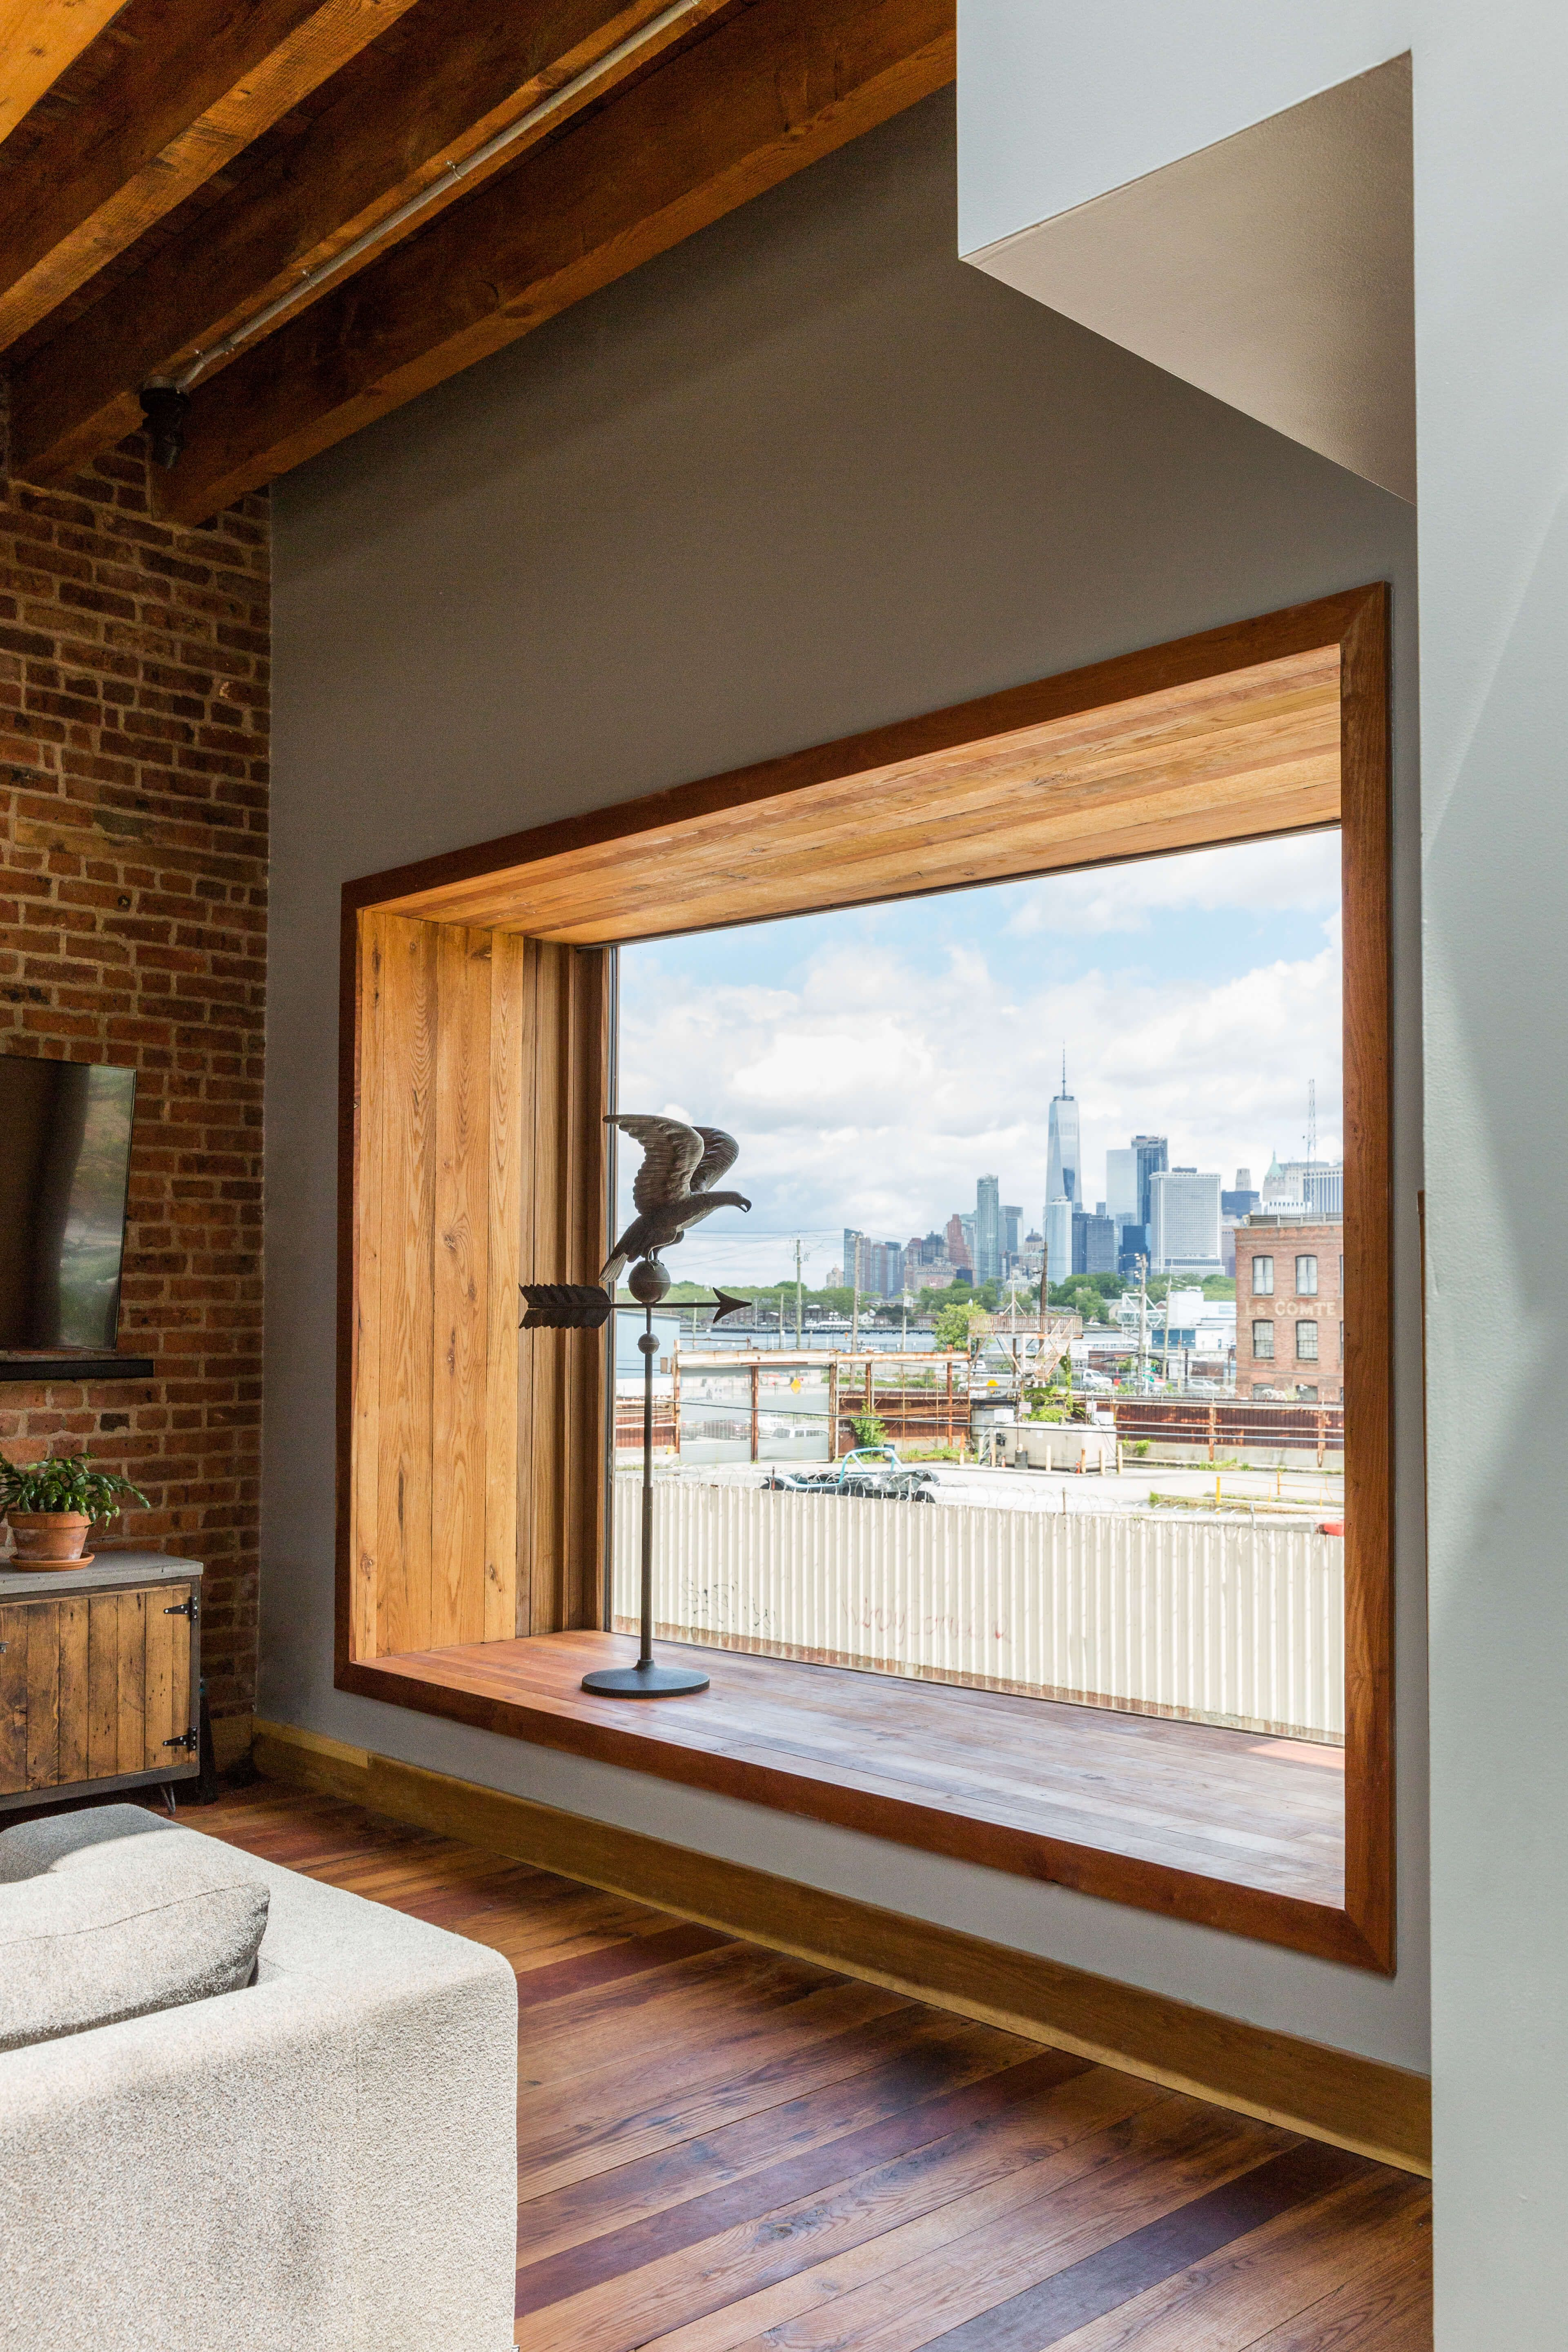 The Insider: Reclaimed Barn Wood, Exposed Brick Lend Warmth and Character to Red Hook Reno